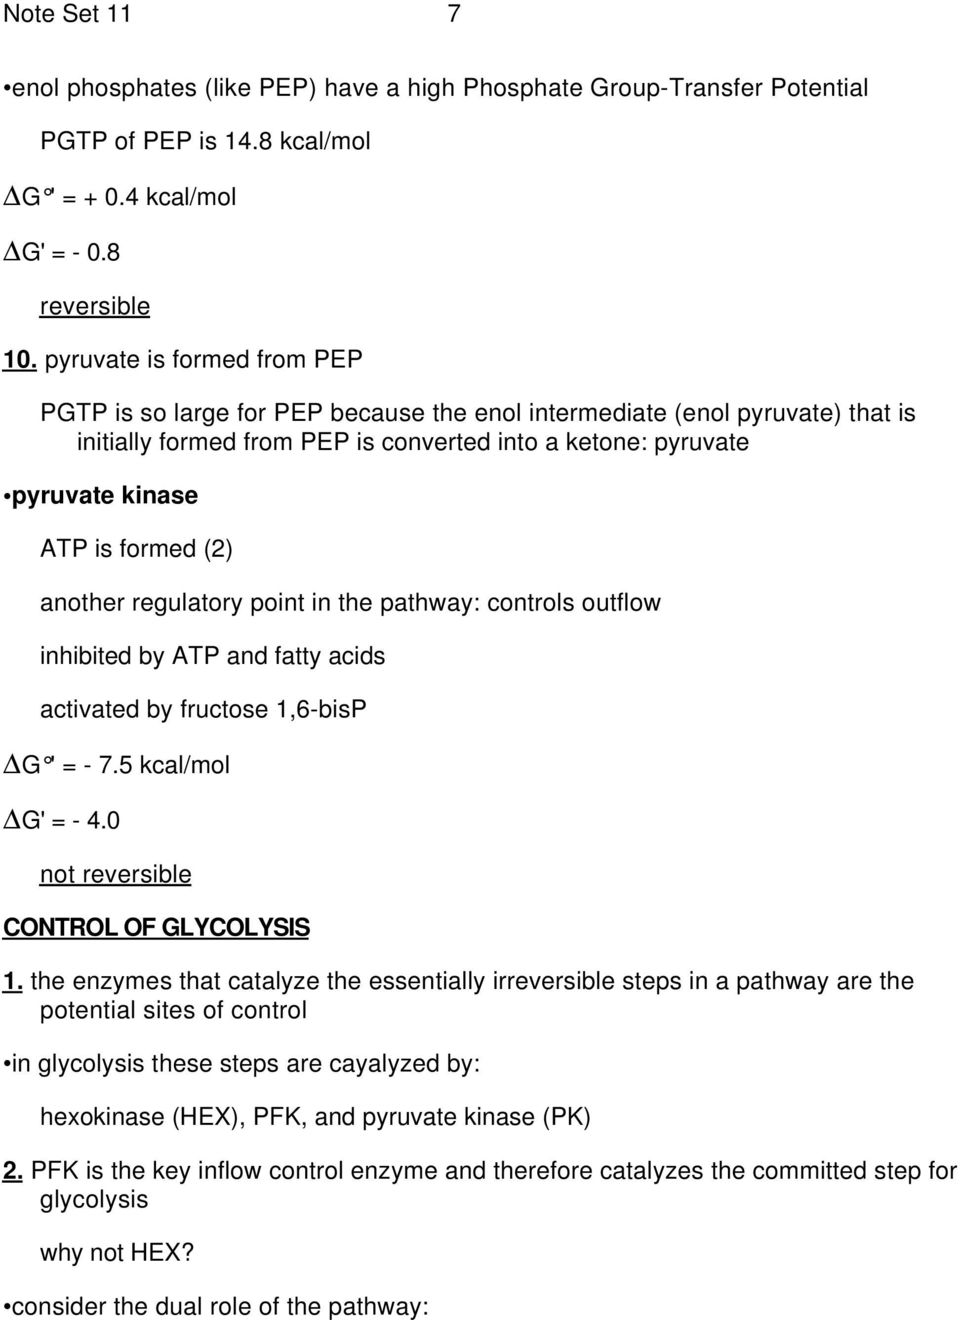 (2) another regulatory point in the pathway: controls outflow inhibited by ATP and fatty acids activated by fructose 1,6-bisP G ' = - 7.5 kcal/mol G' = - 4.0 not reversible CONTROL OF GLYCOLYSIS 1.